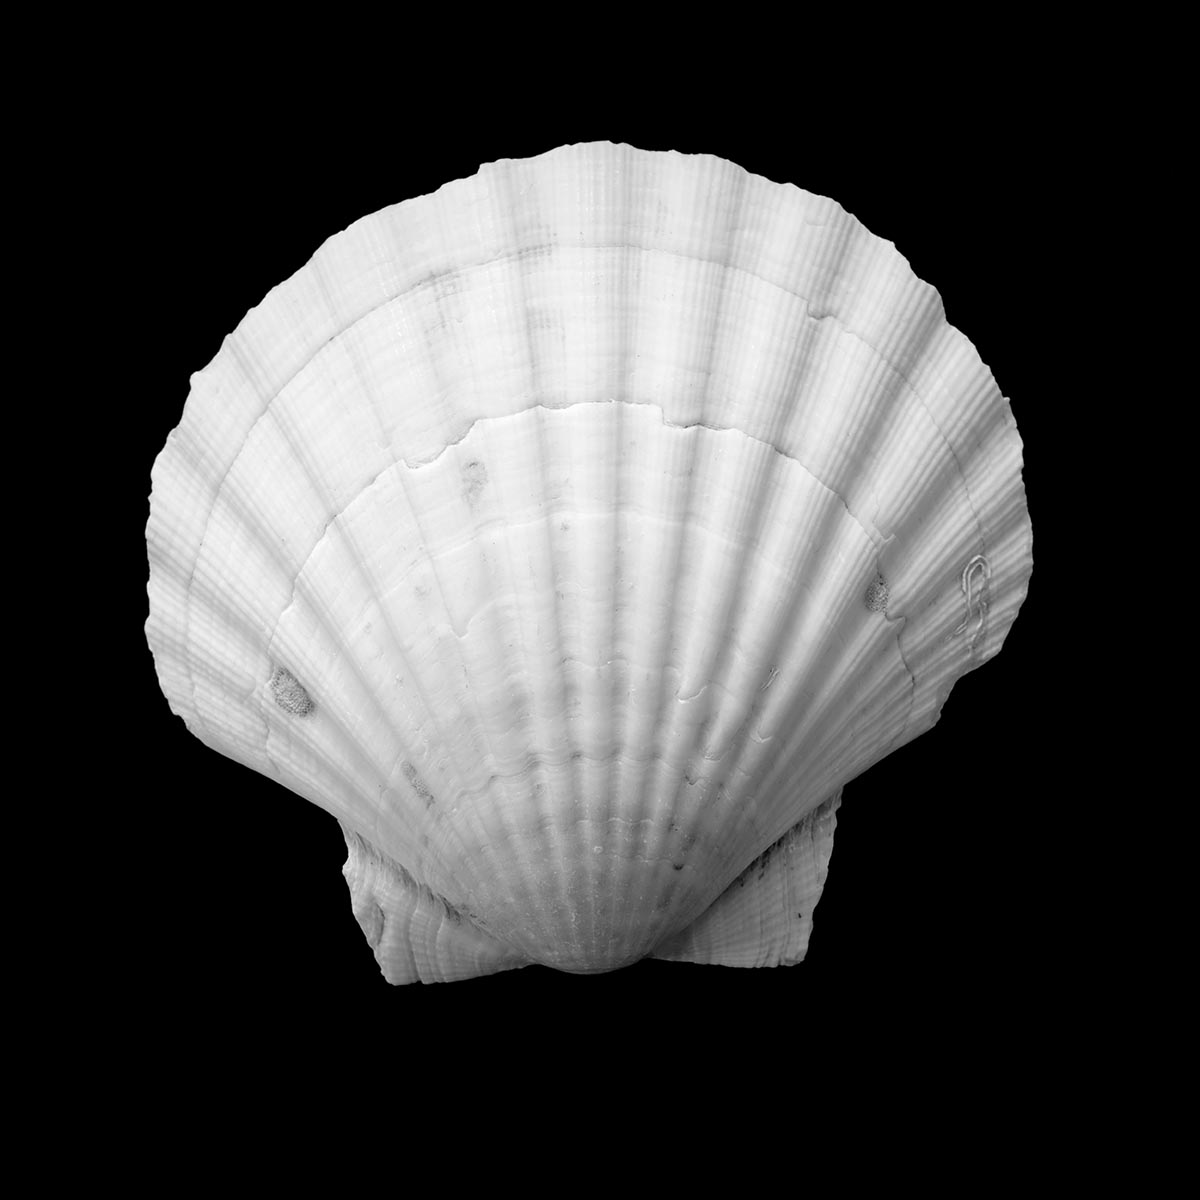 Free stock photo White scallop shell against a black background